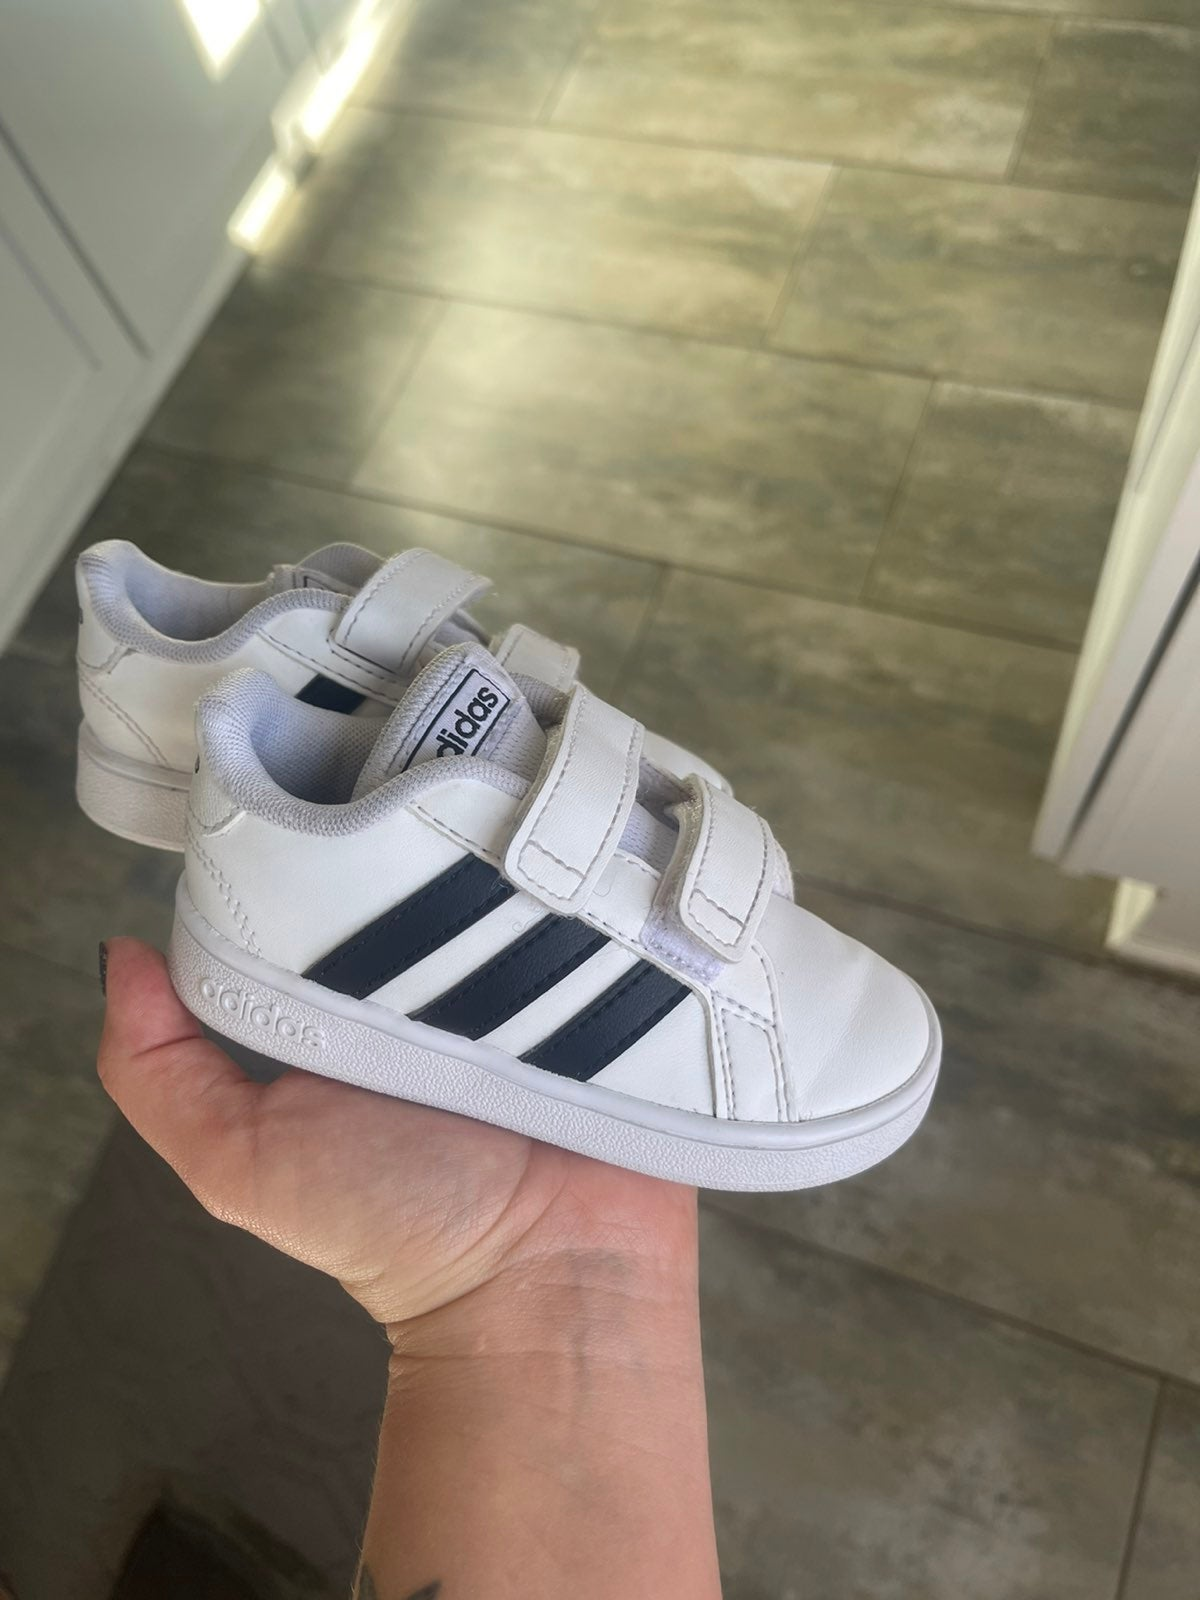 Toddler grand court adidas size  5.5